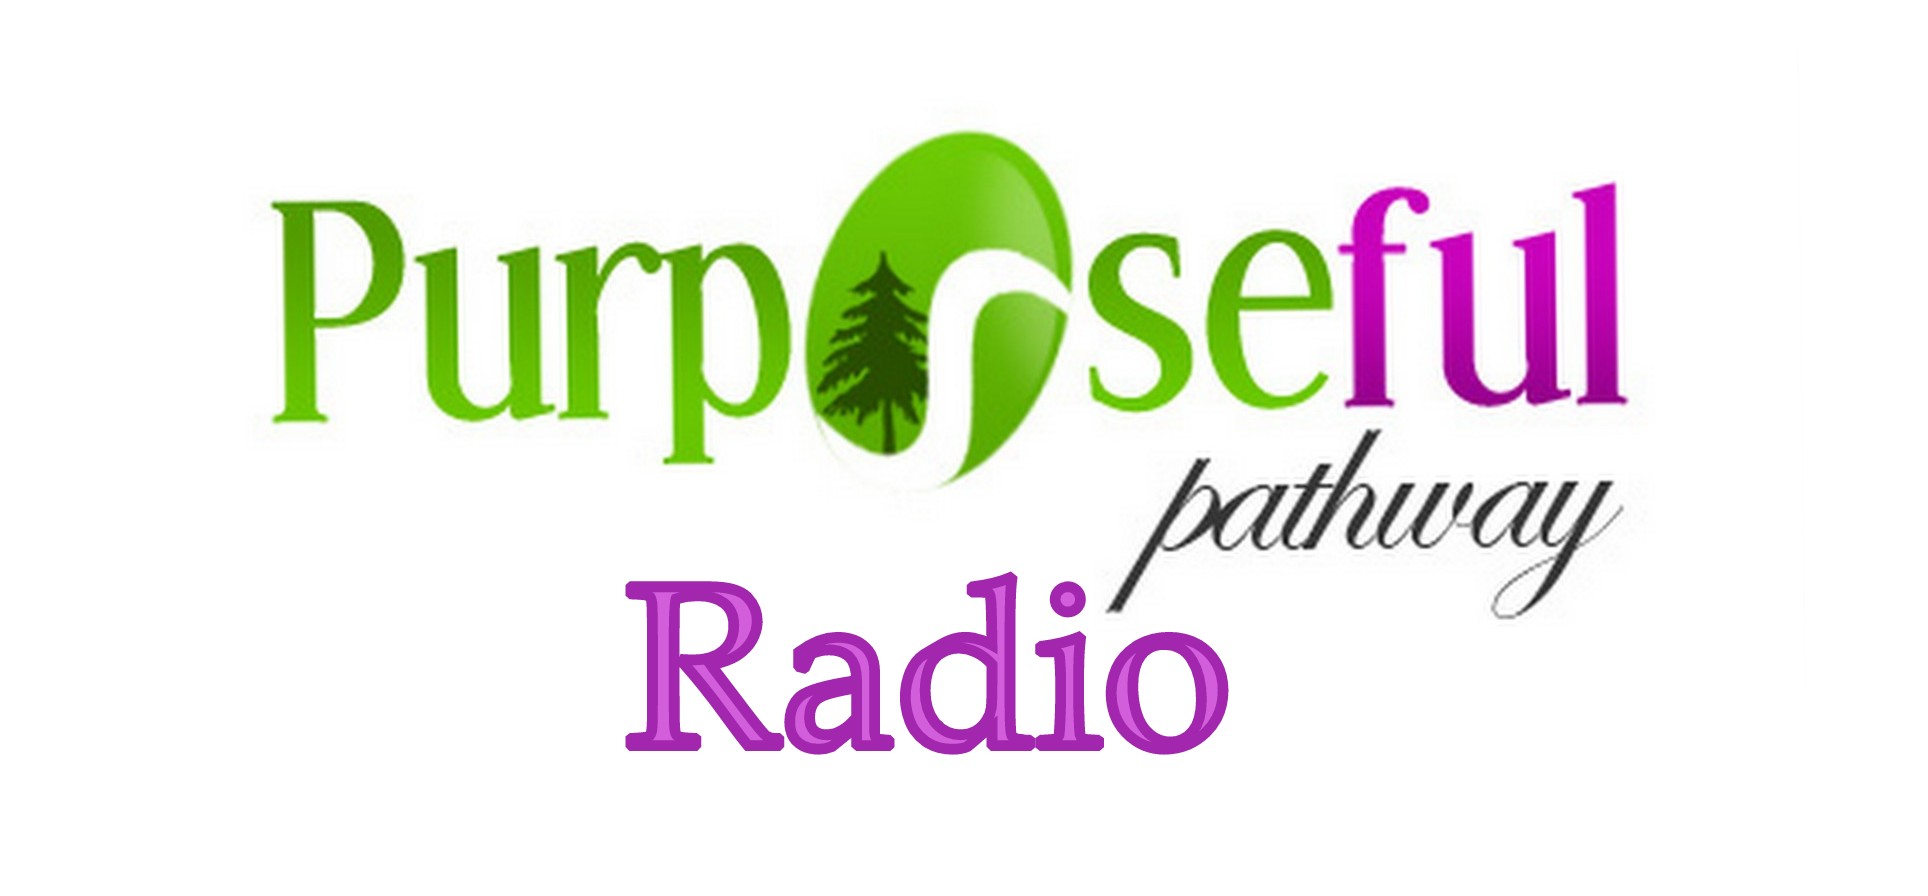 http://reflecthislight.com/wp-content/uploads/2013/02/Purposeful-Pathway-Radio-New-Logo.jpg